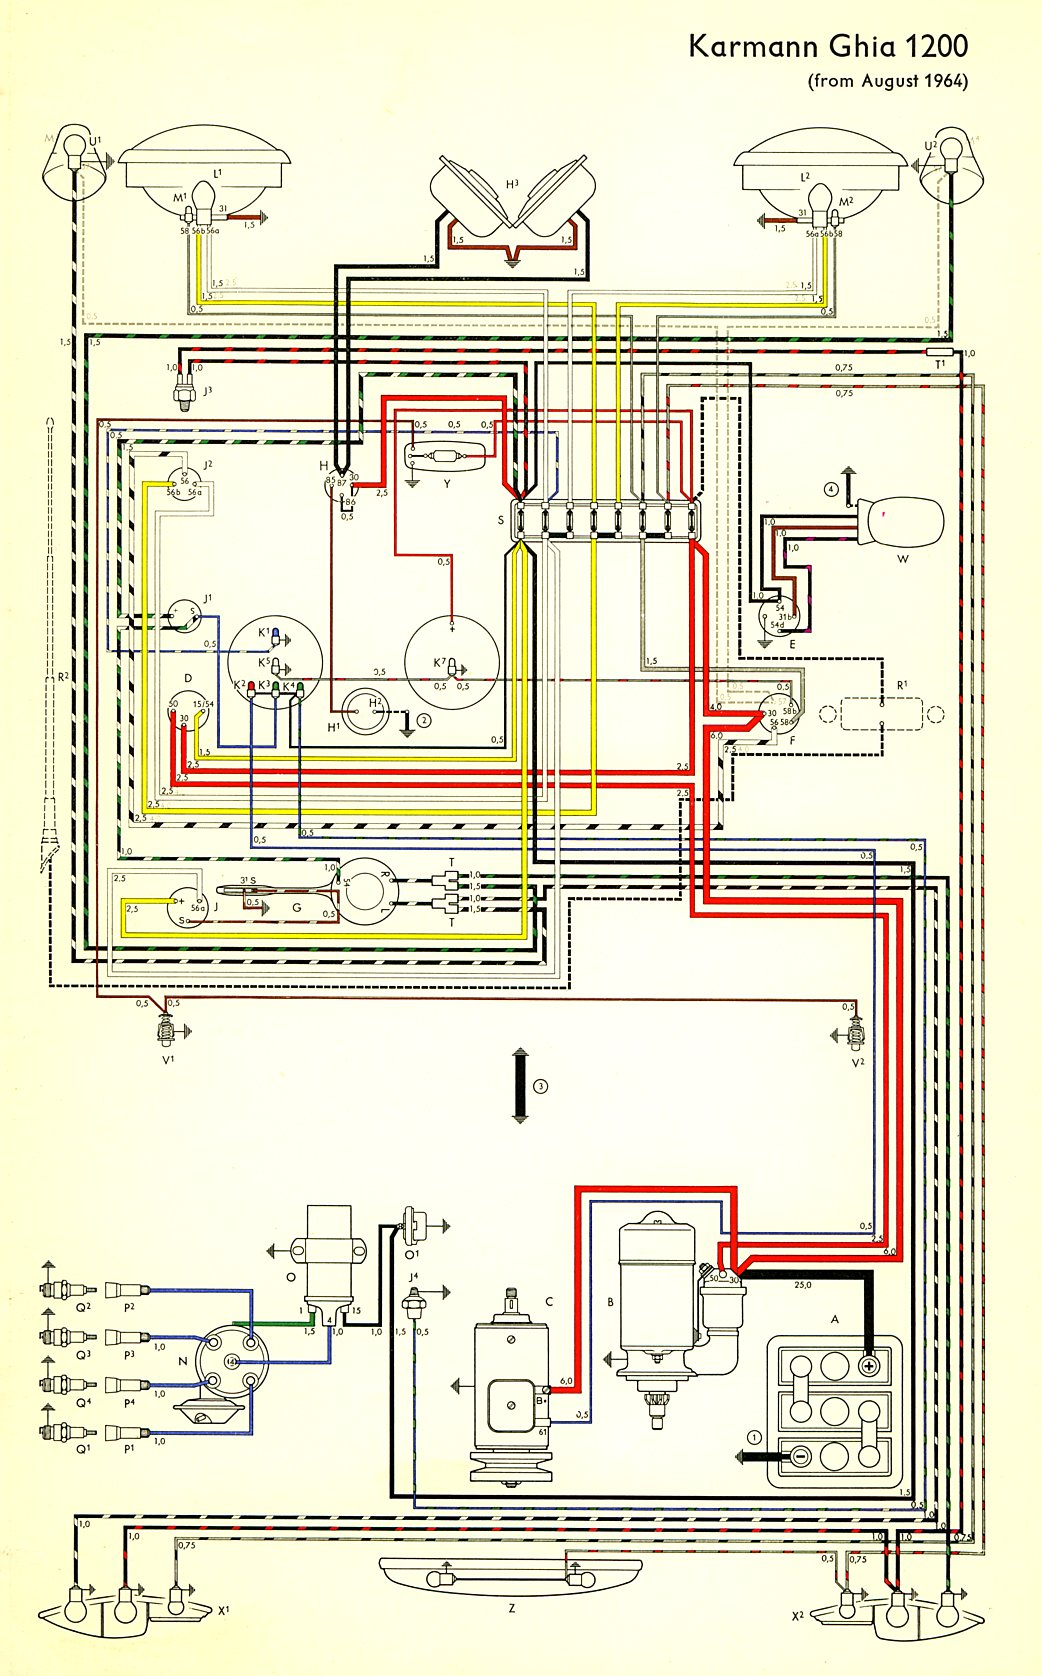 thesamba com karmann ghia wiring diagrams rh thesamba com 1969 VW 1600 Wiring-Diagram 1969 VW 1600 Wiring-Diagram